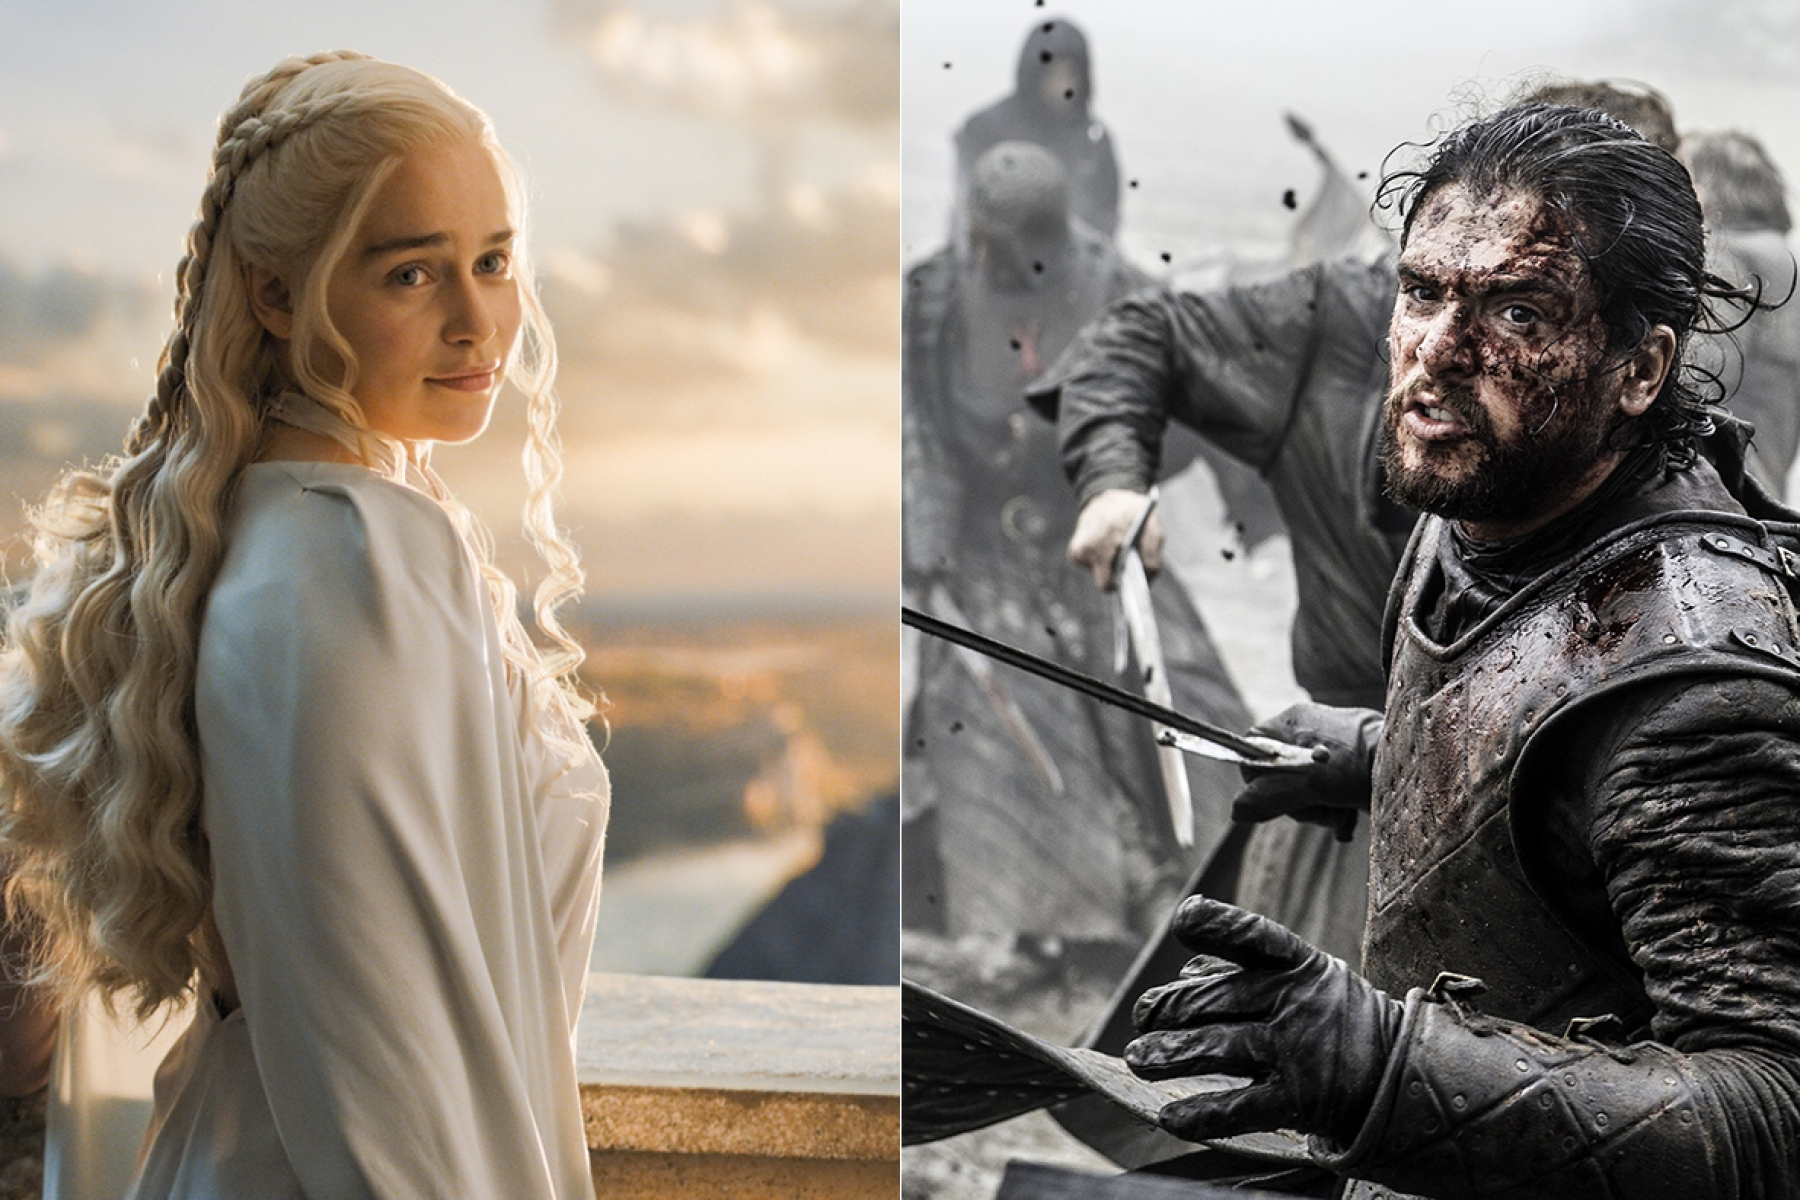 40 Best 'Game of Thrones' Characters - Ranked and Updated - Rolling Stone